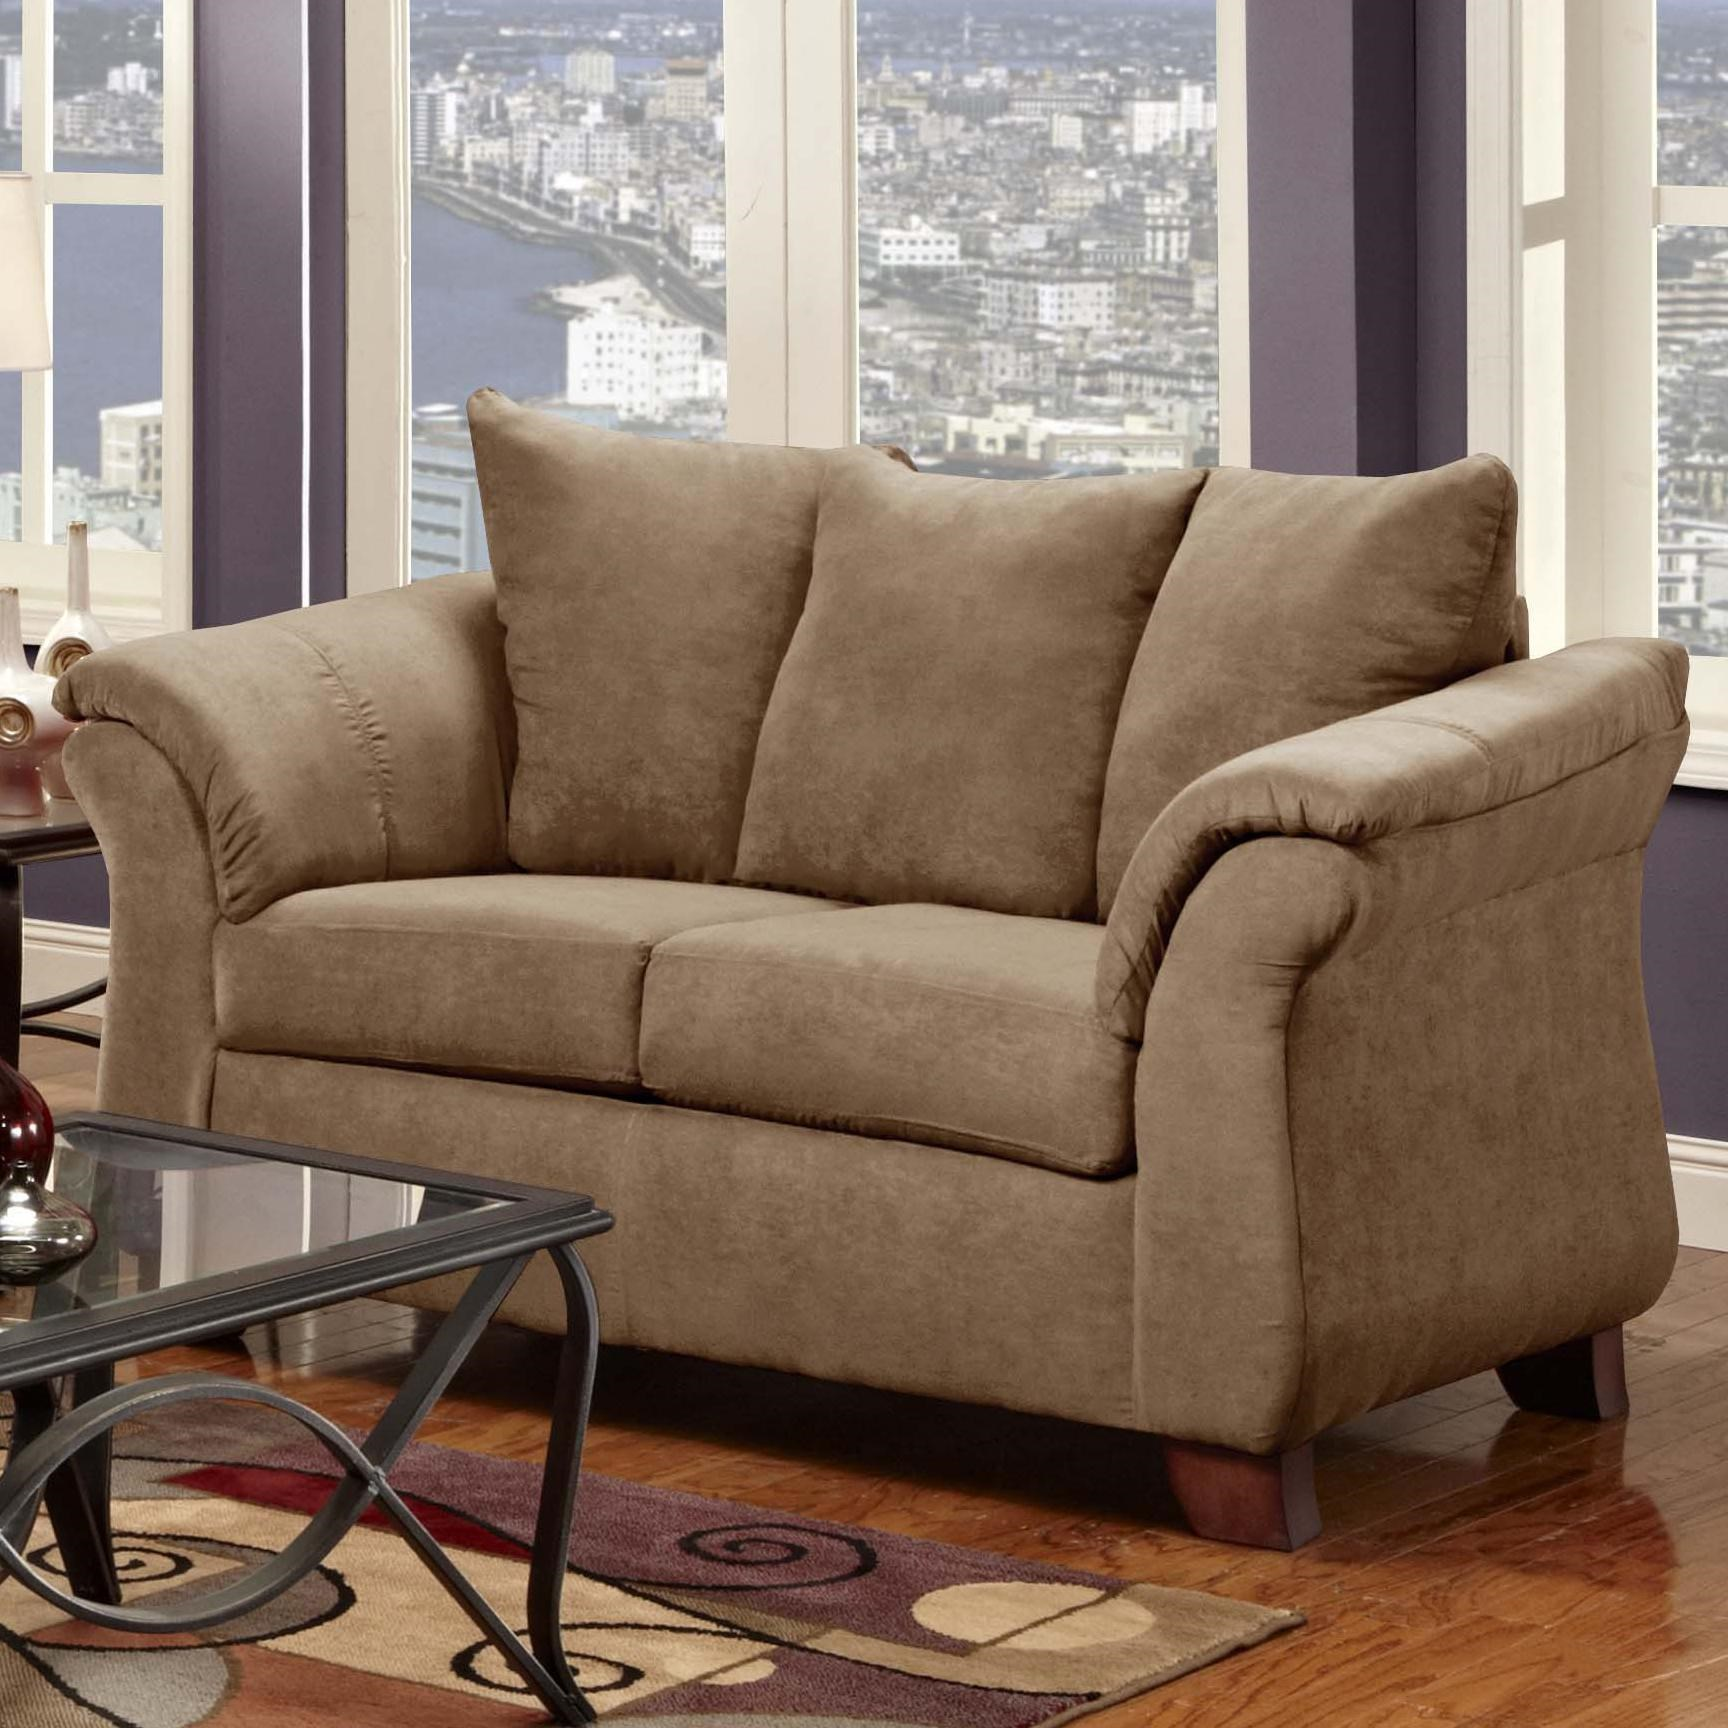 Washington Furniture 2000 Two Seat Loveseat With Flared Armrests    Household Furniture   Love Seat